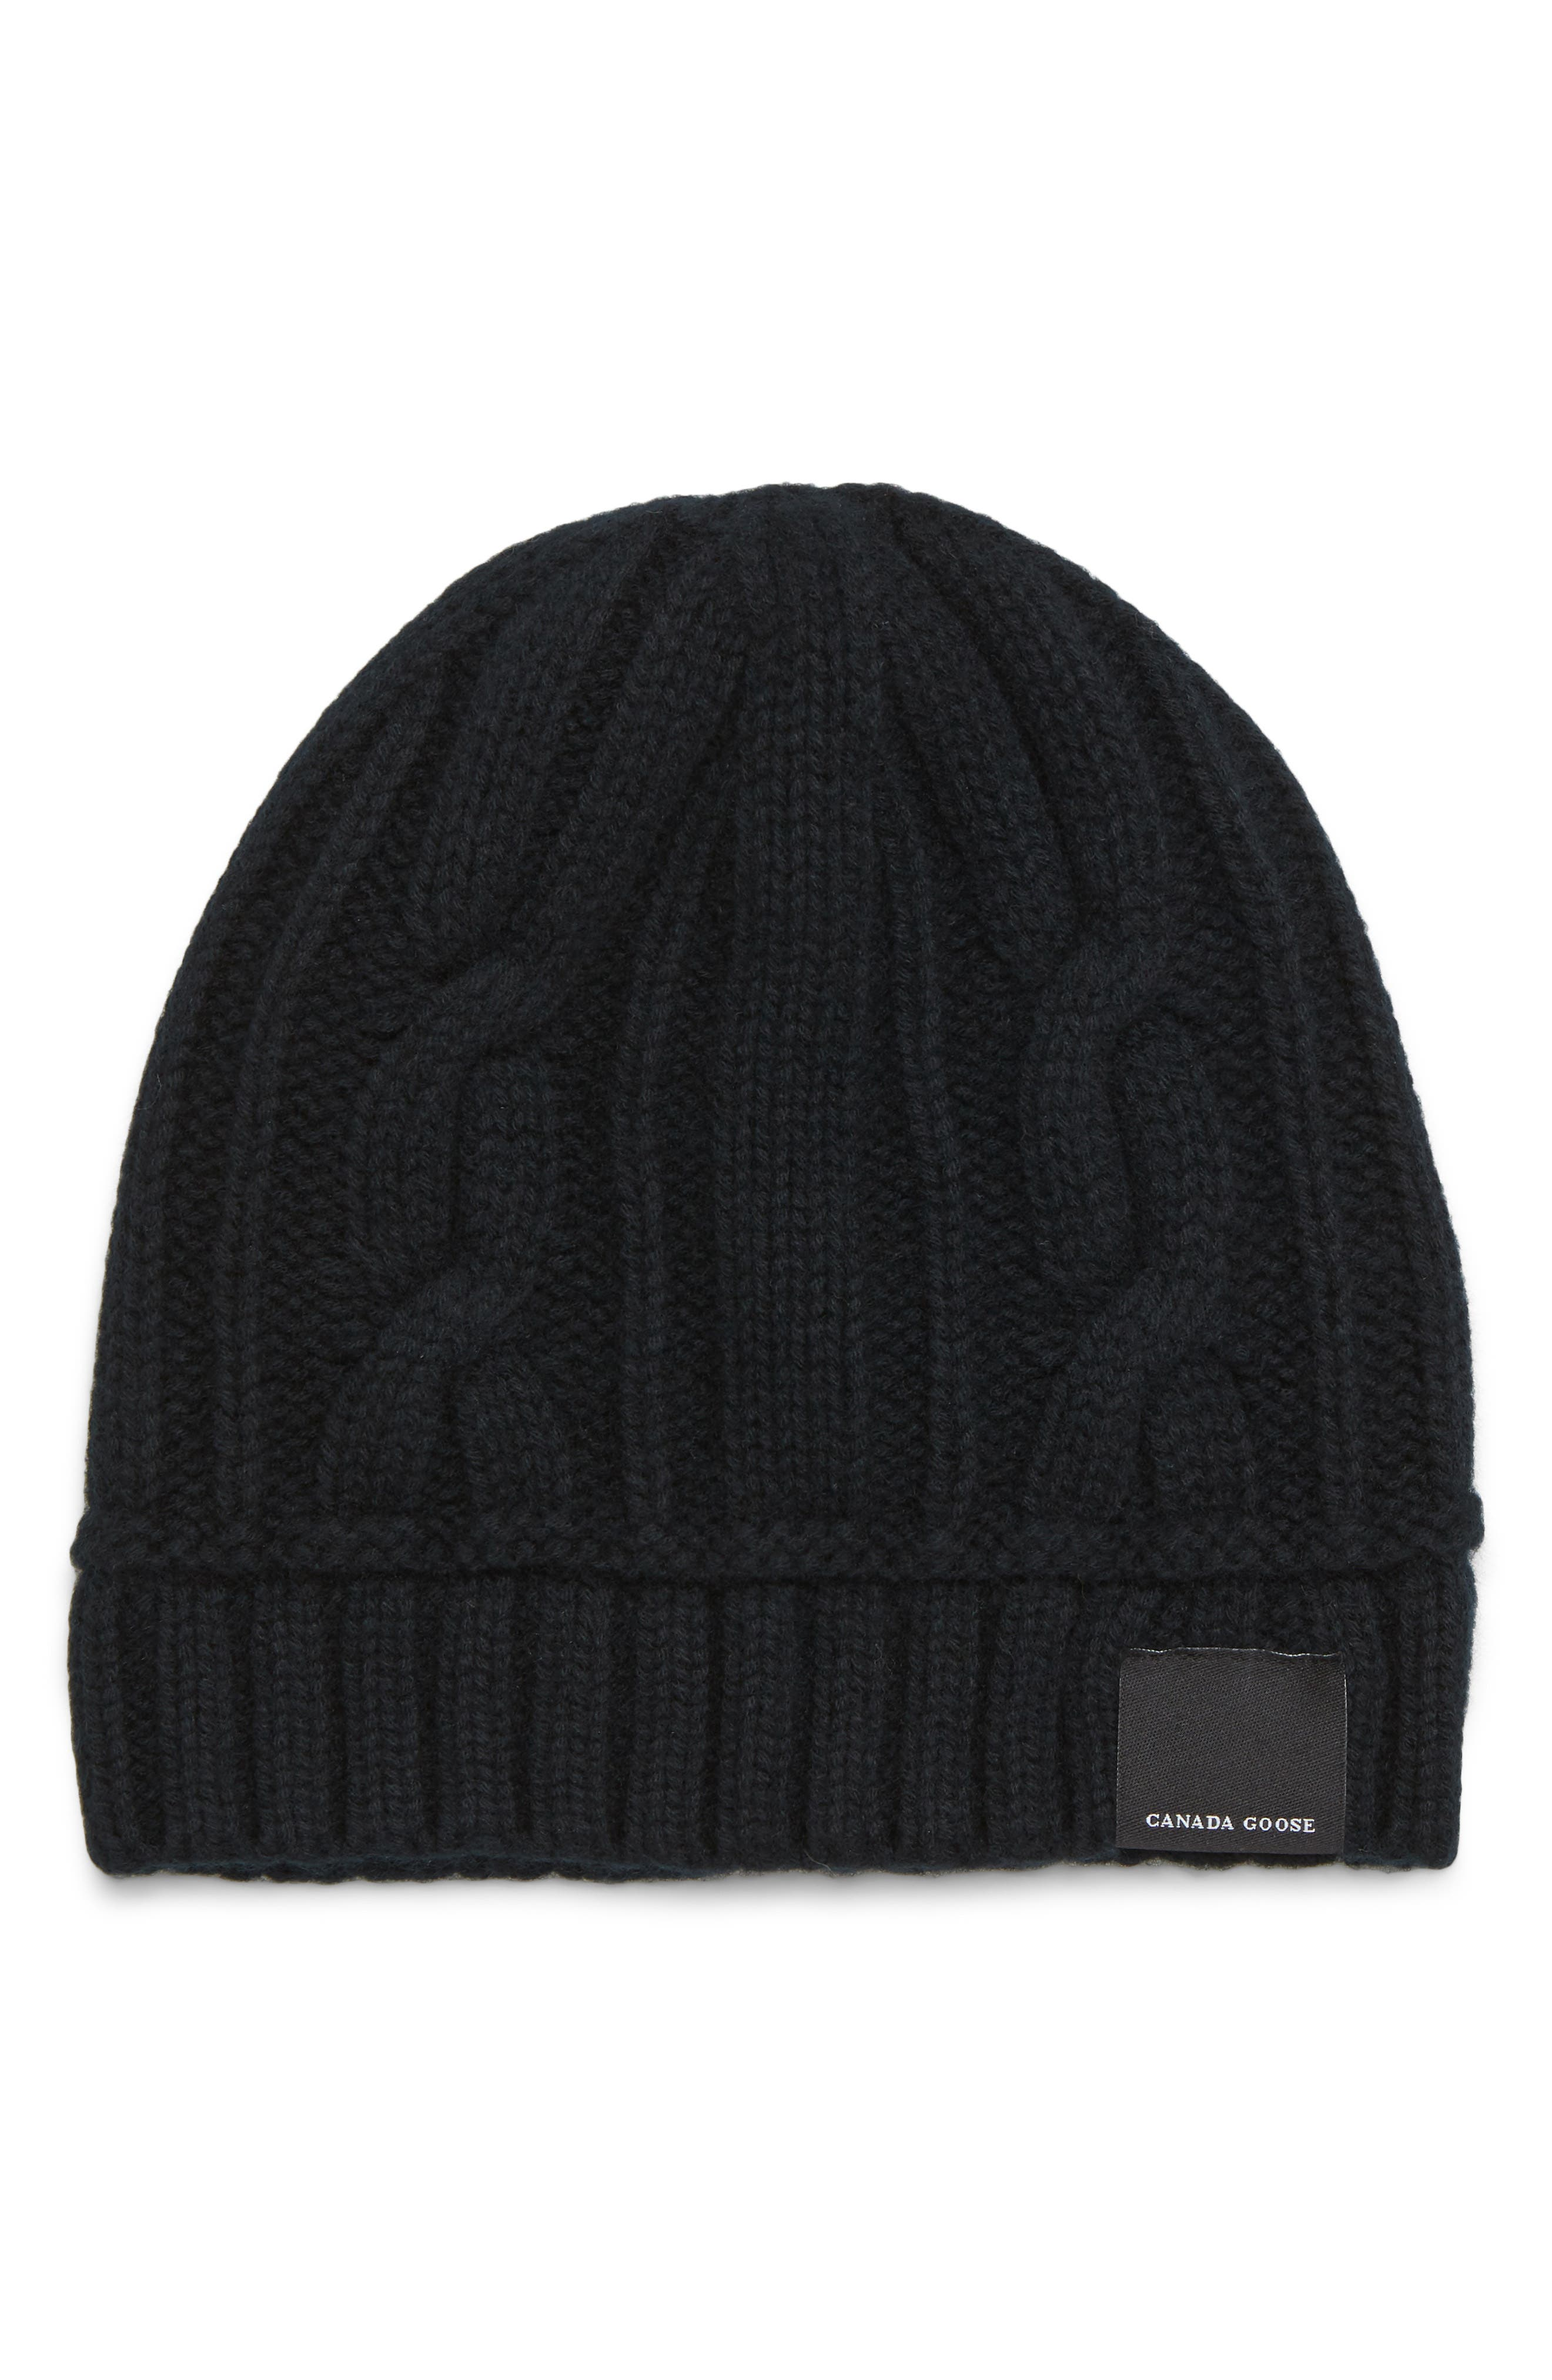 Cabled Merino Wool Toque Beanie - Black